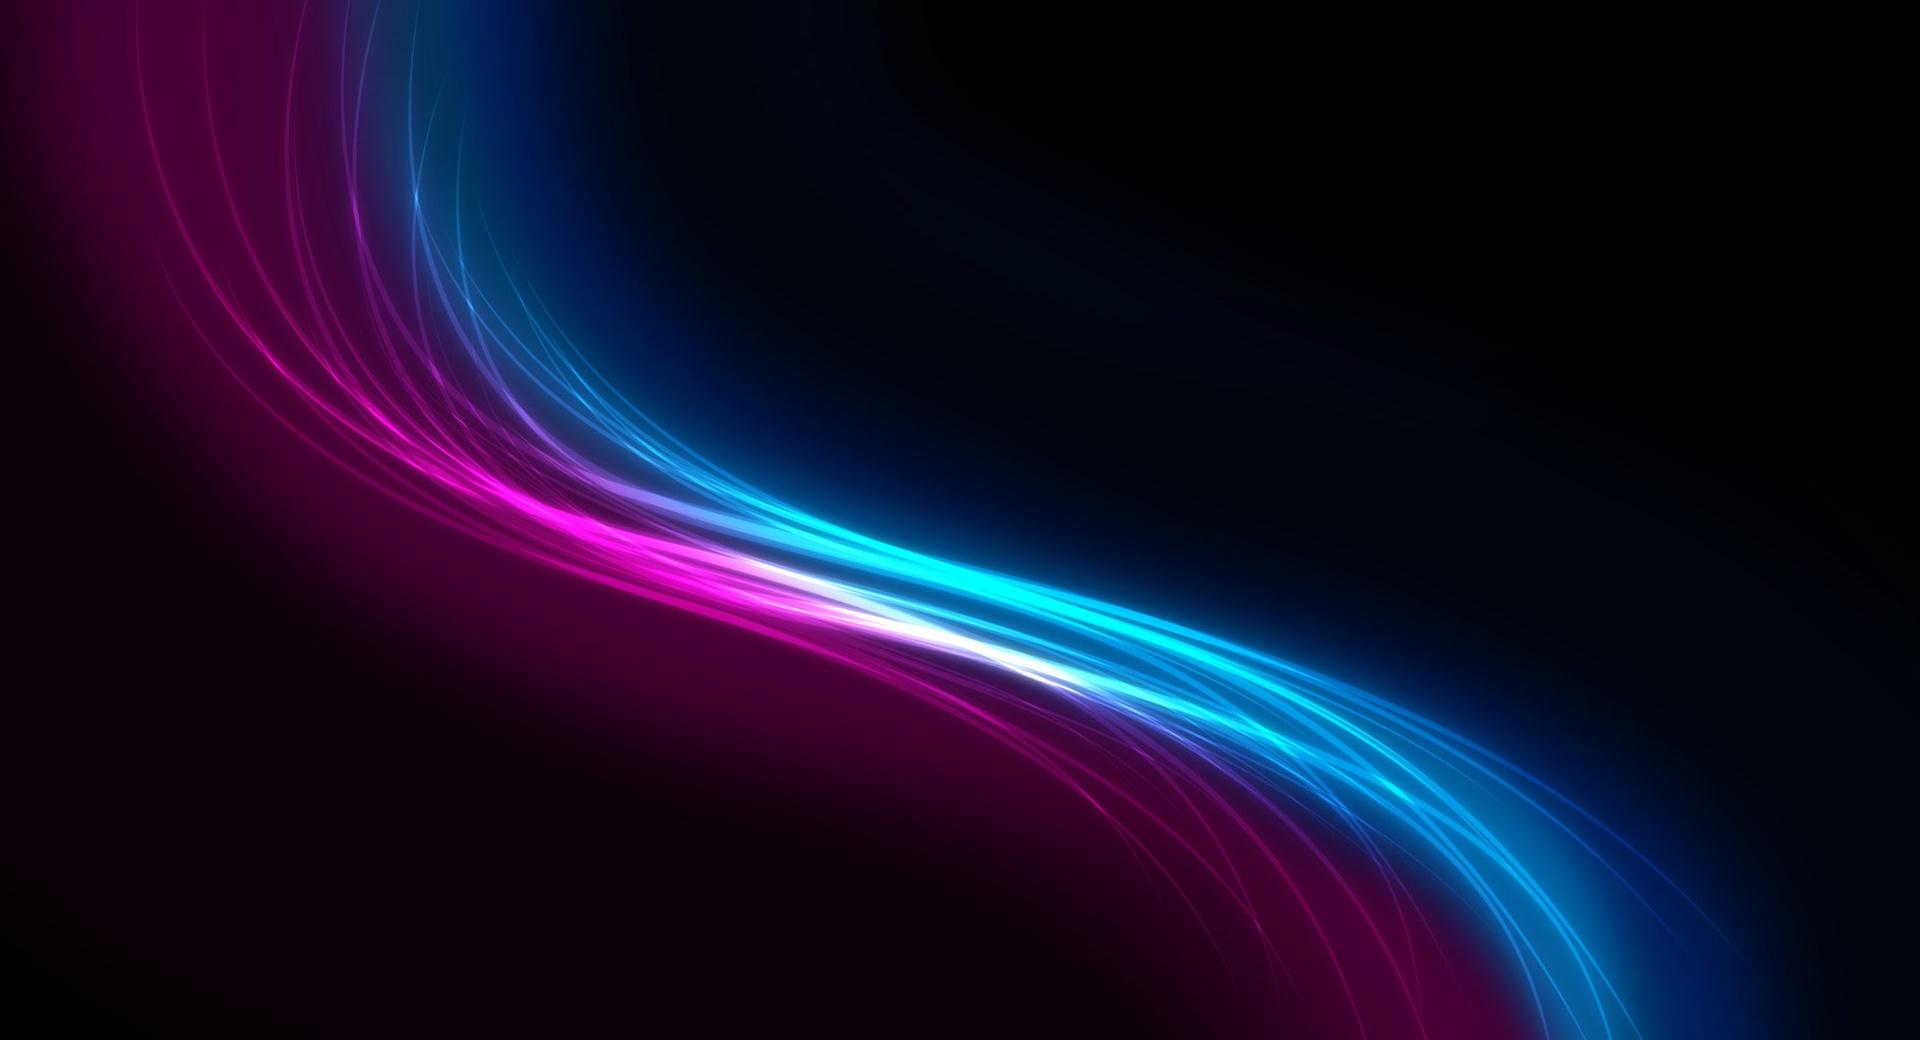 Dark Colors Abstract at 750 x 1334 iPhone 6 size wallpapers HD quality